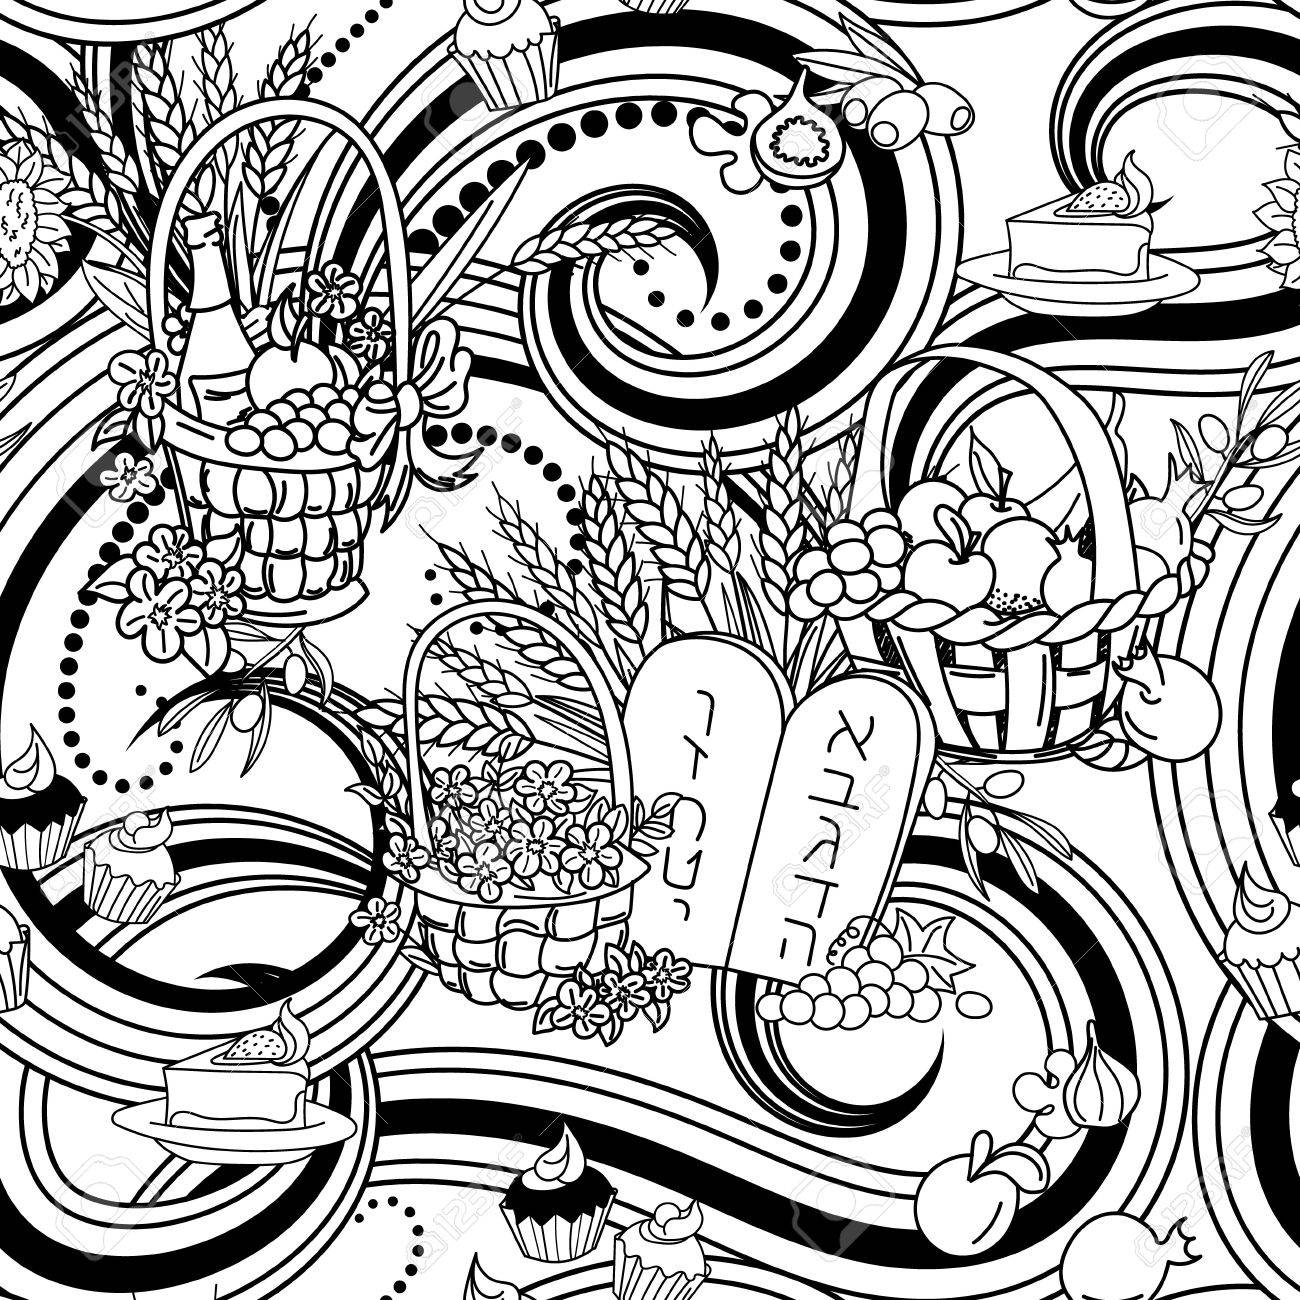 shavuot seamless pattern background shavuot symbols black and white coloring page vector illustration